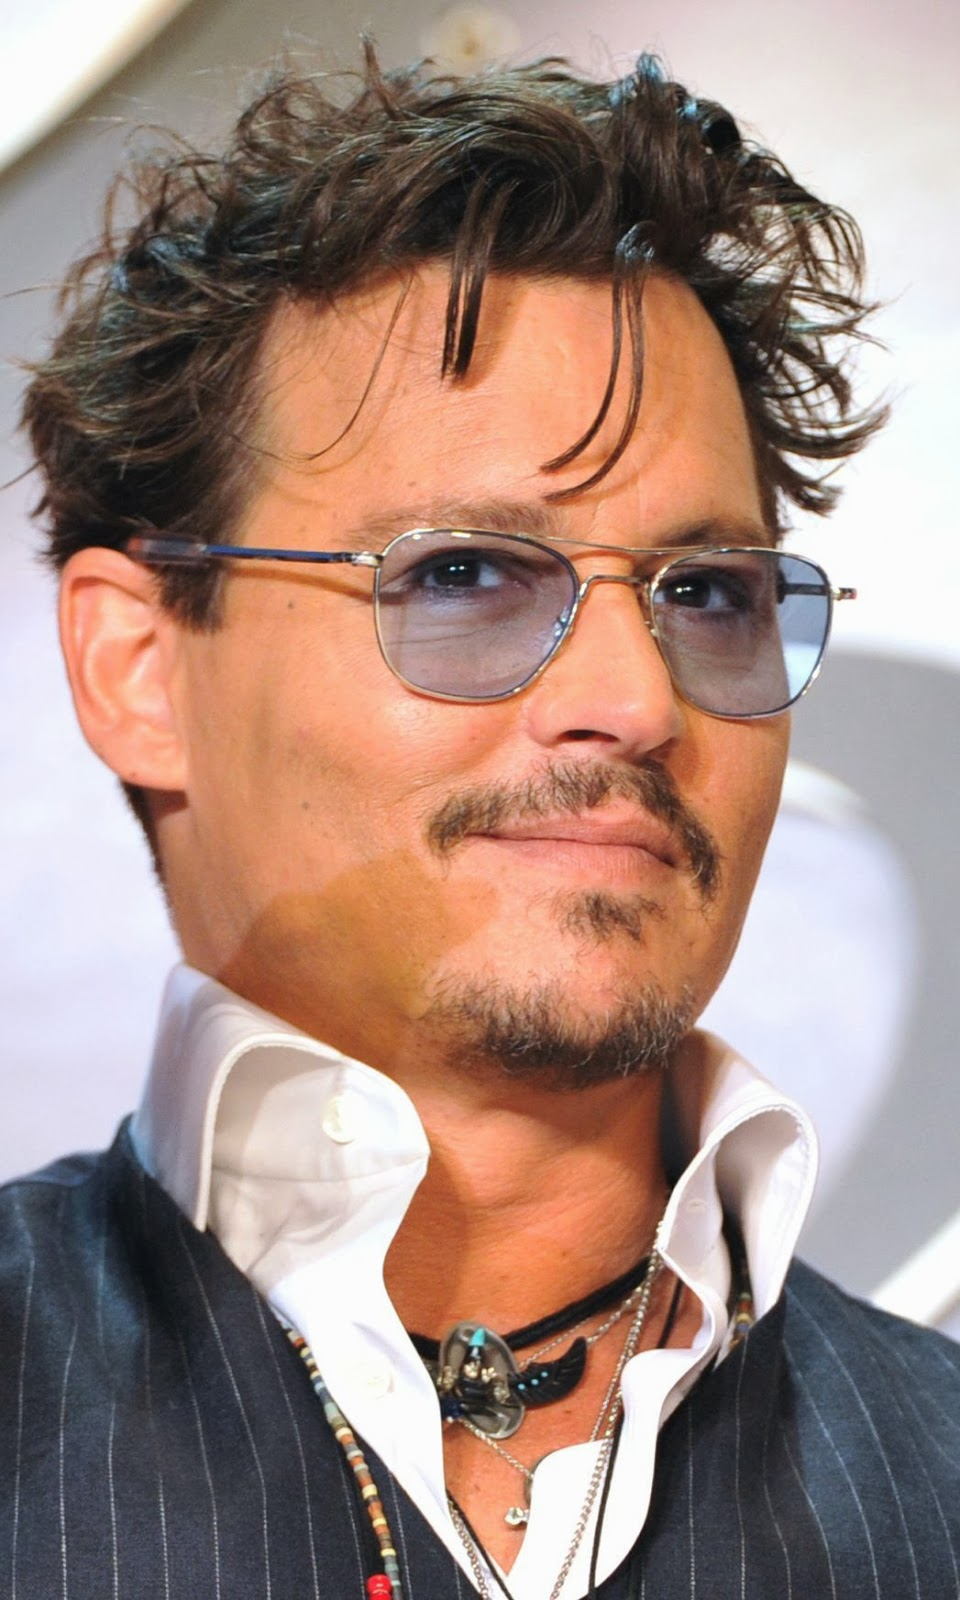 Rum Diary, Johnny Depp, Actress, Amber Heard, Actor, Film, Movie, Vanessa Paradis, Split, Hollywood, Engage, Marriage, People Magazine, Report, Affair, Wedding, Showbiz,